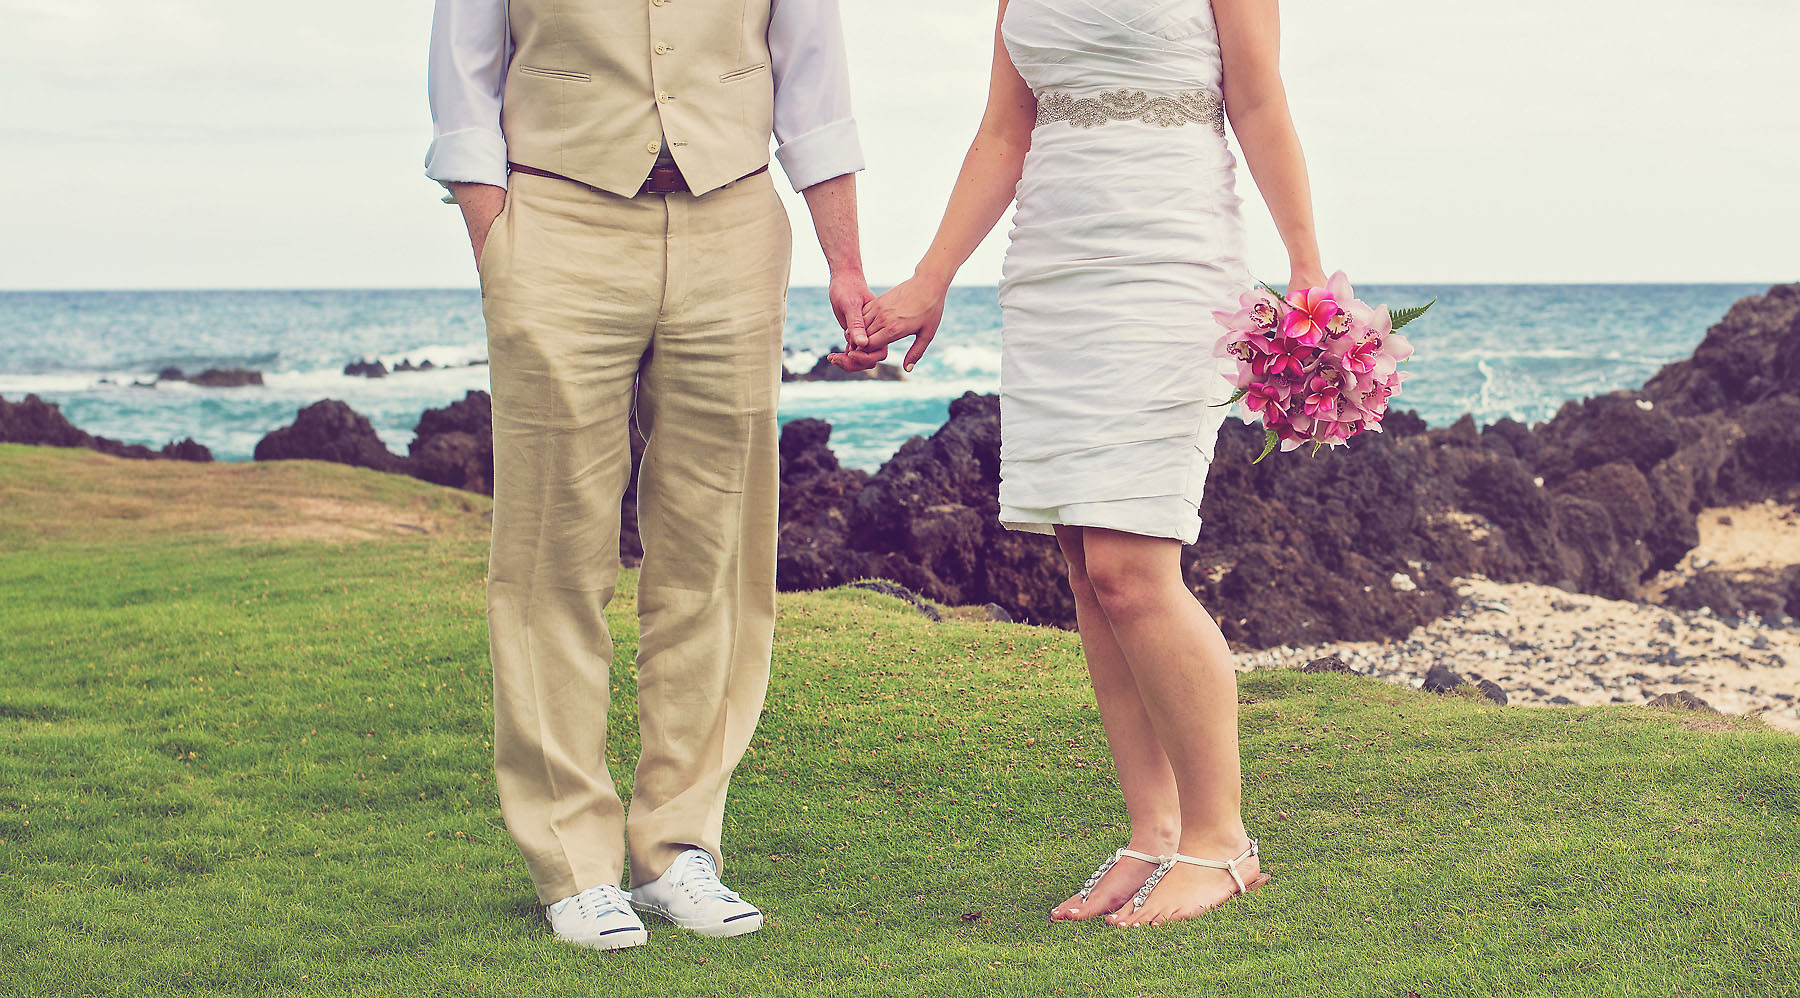 Bride and Groom Hold Hands in this Beach Wedding in Maui, Hawaii with the Ocean and Rocks in the Background. Photo Credit: Jared Lawson Photography